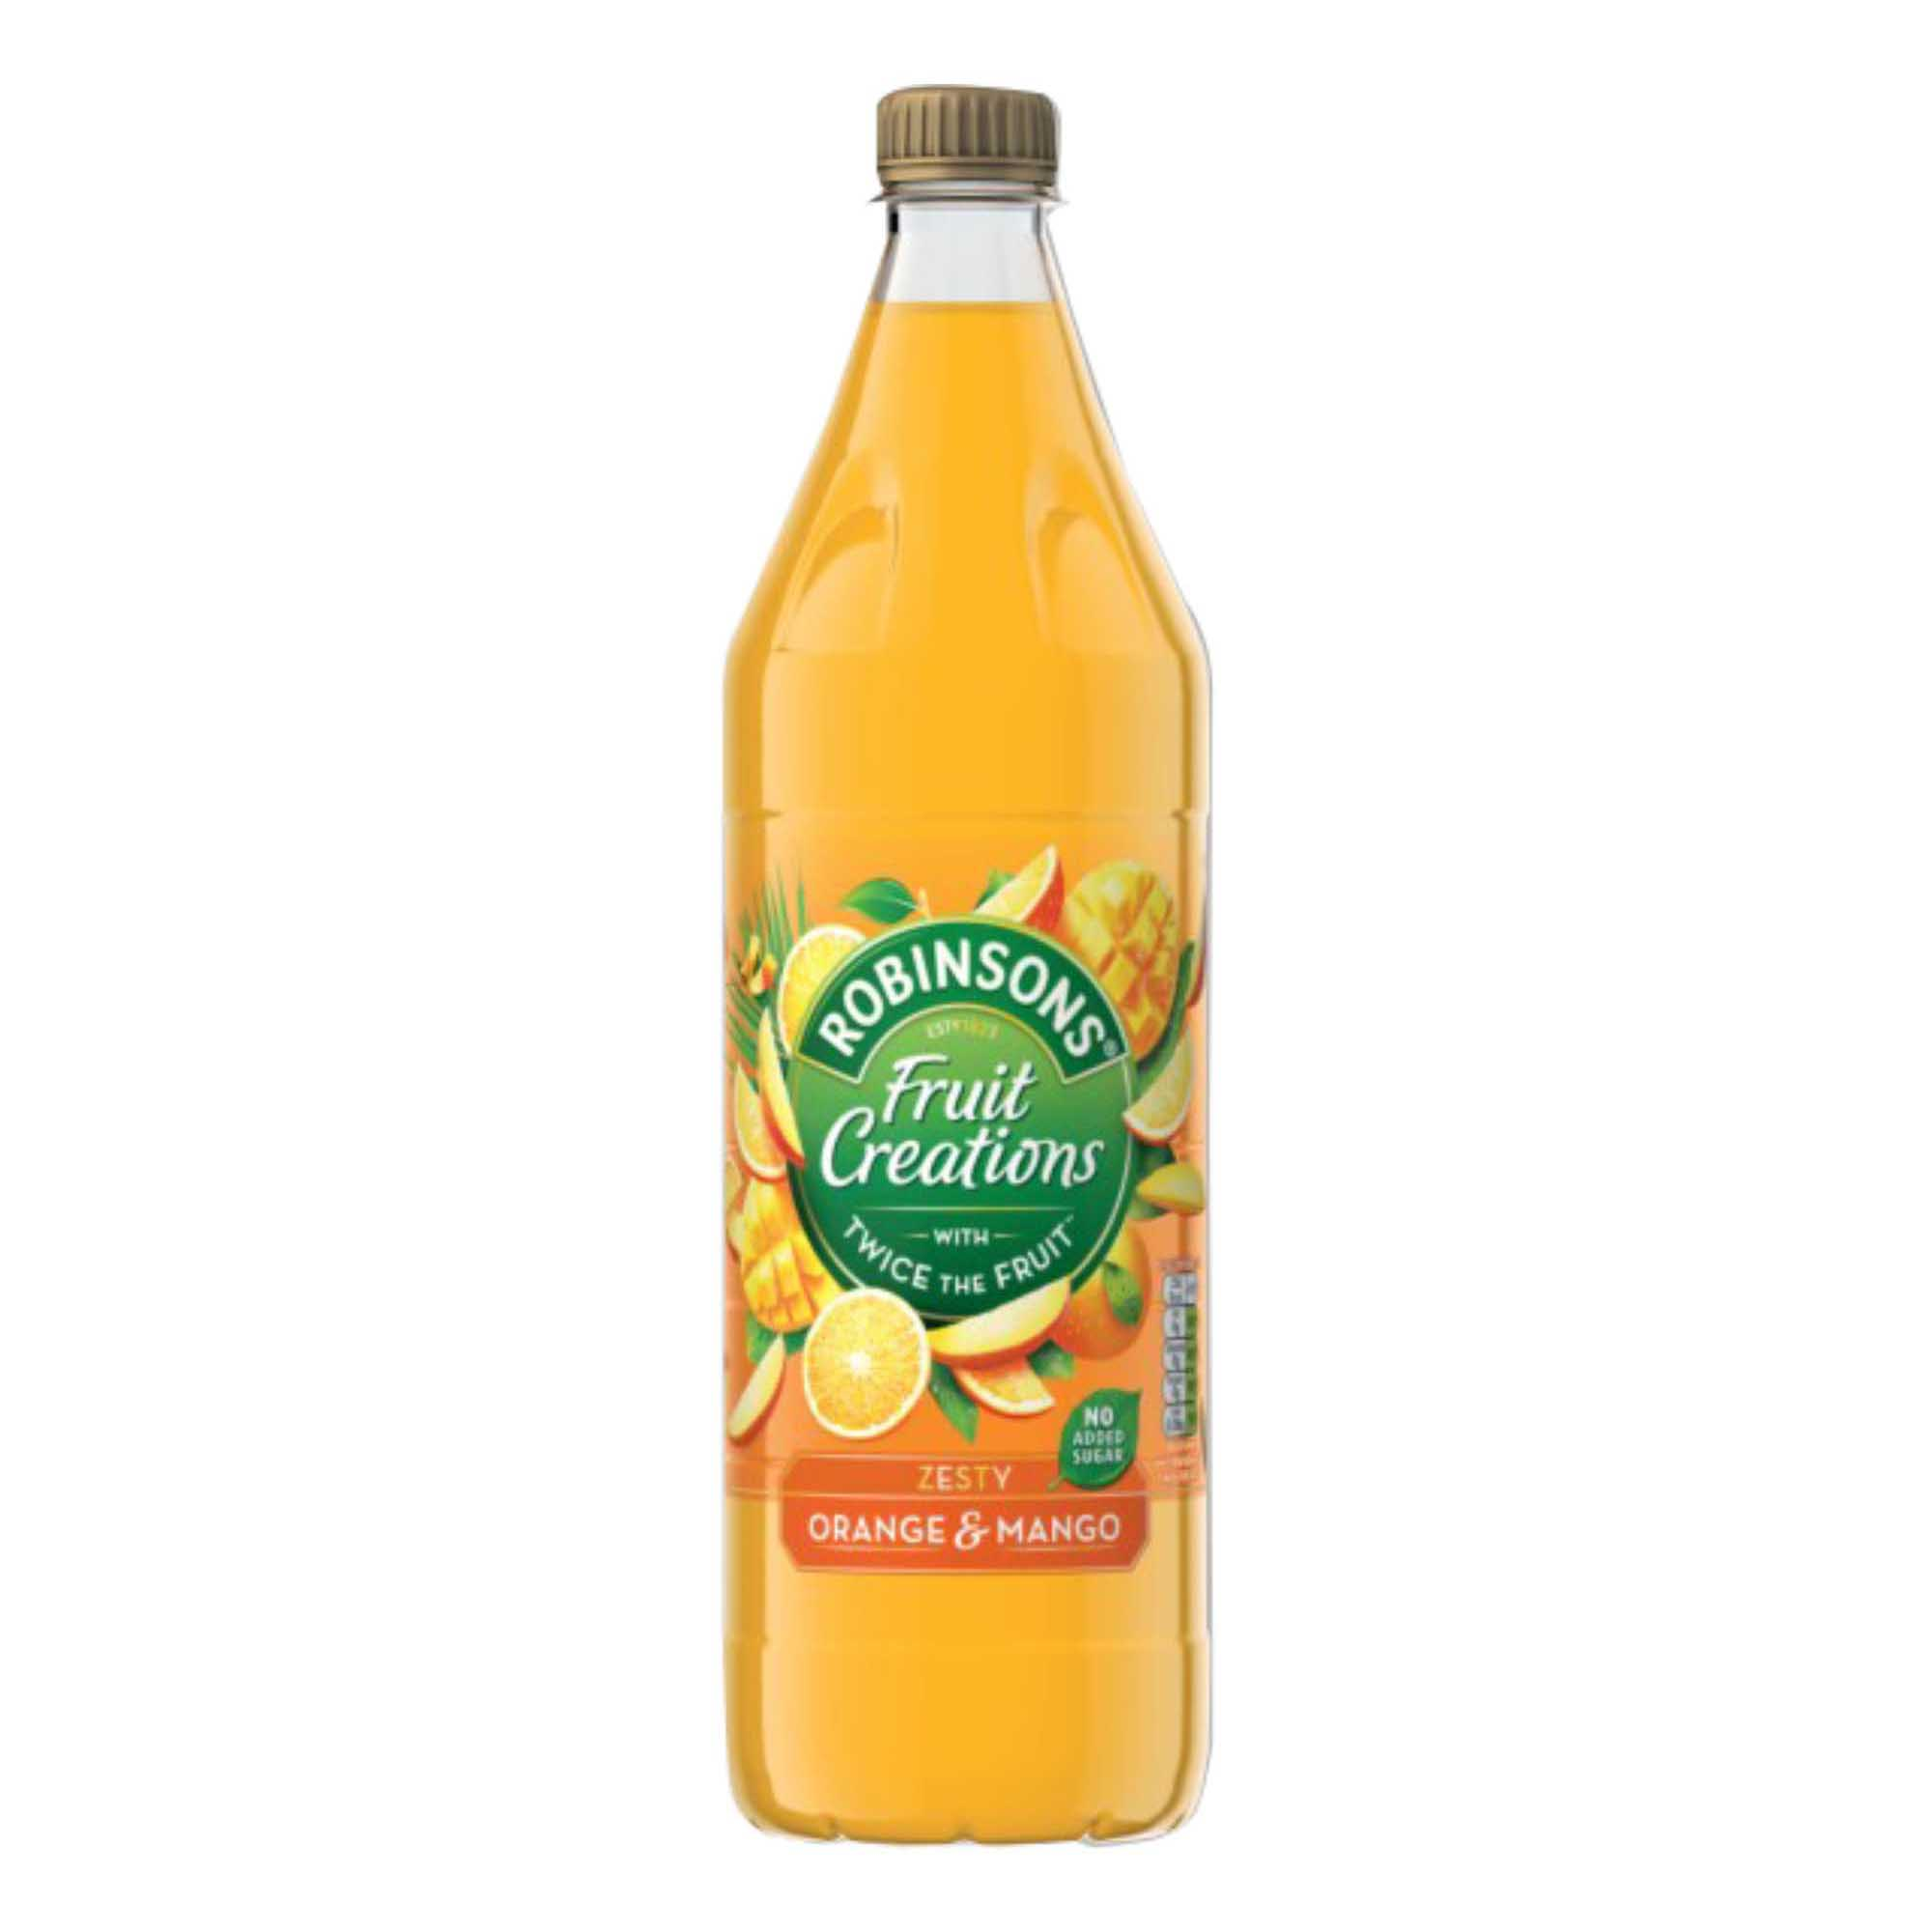 Robinsons Creation Squash No Added Sugar 1 Litre Orange & Mango Ref 962001 Pack 12